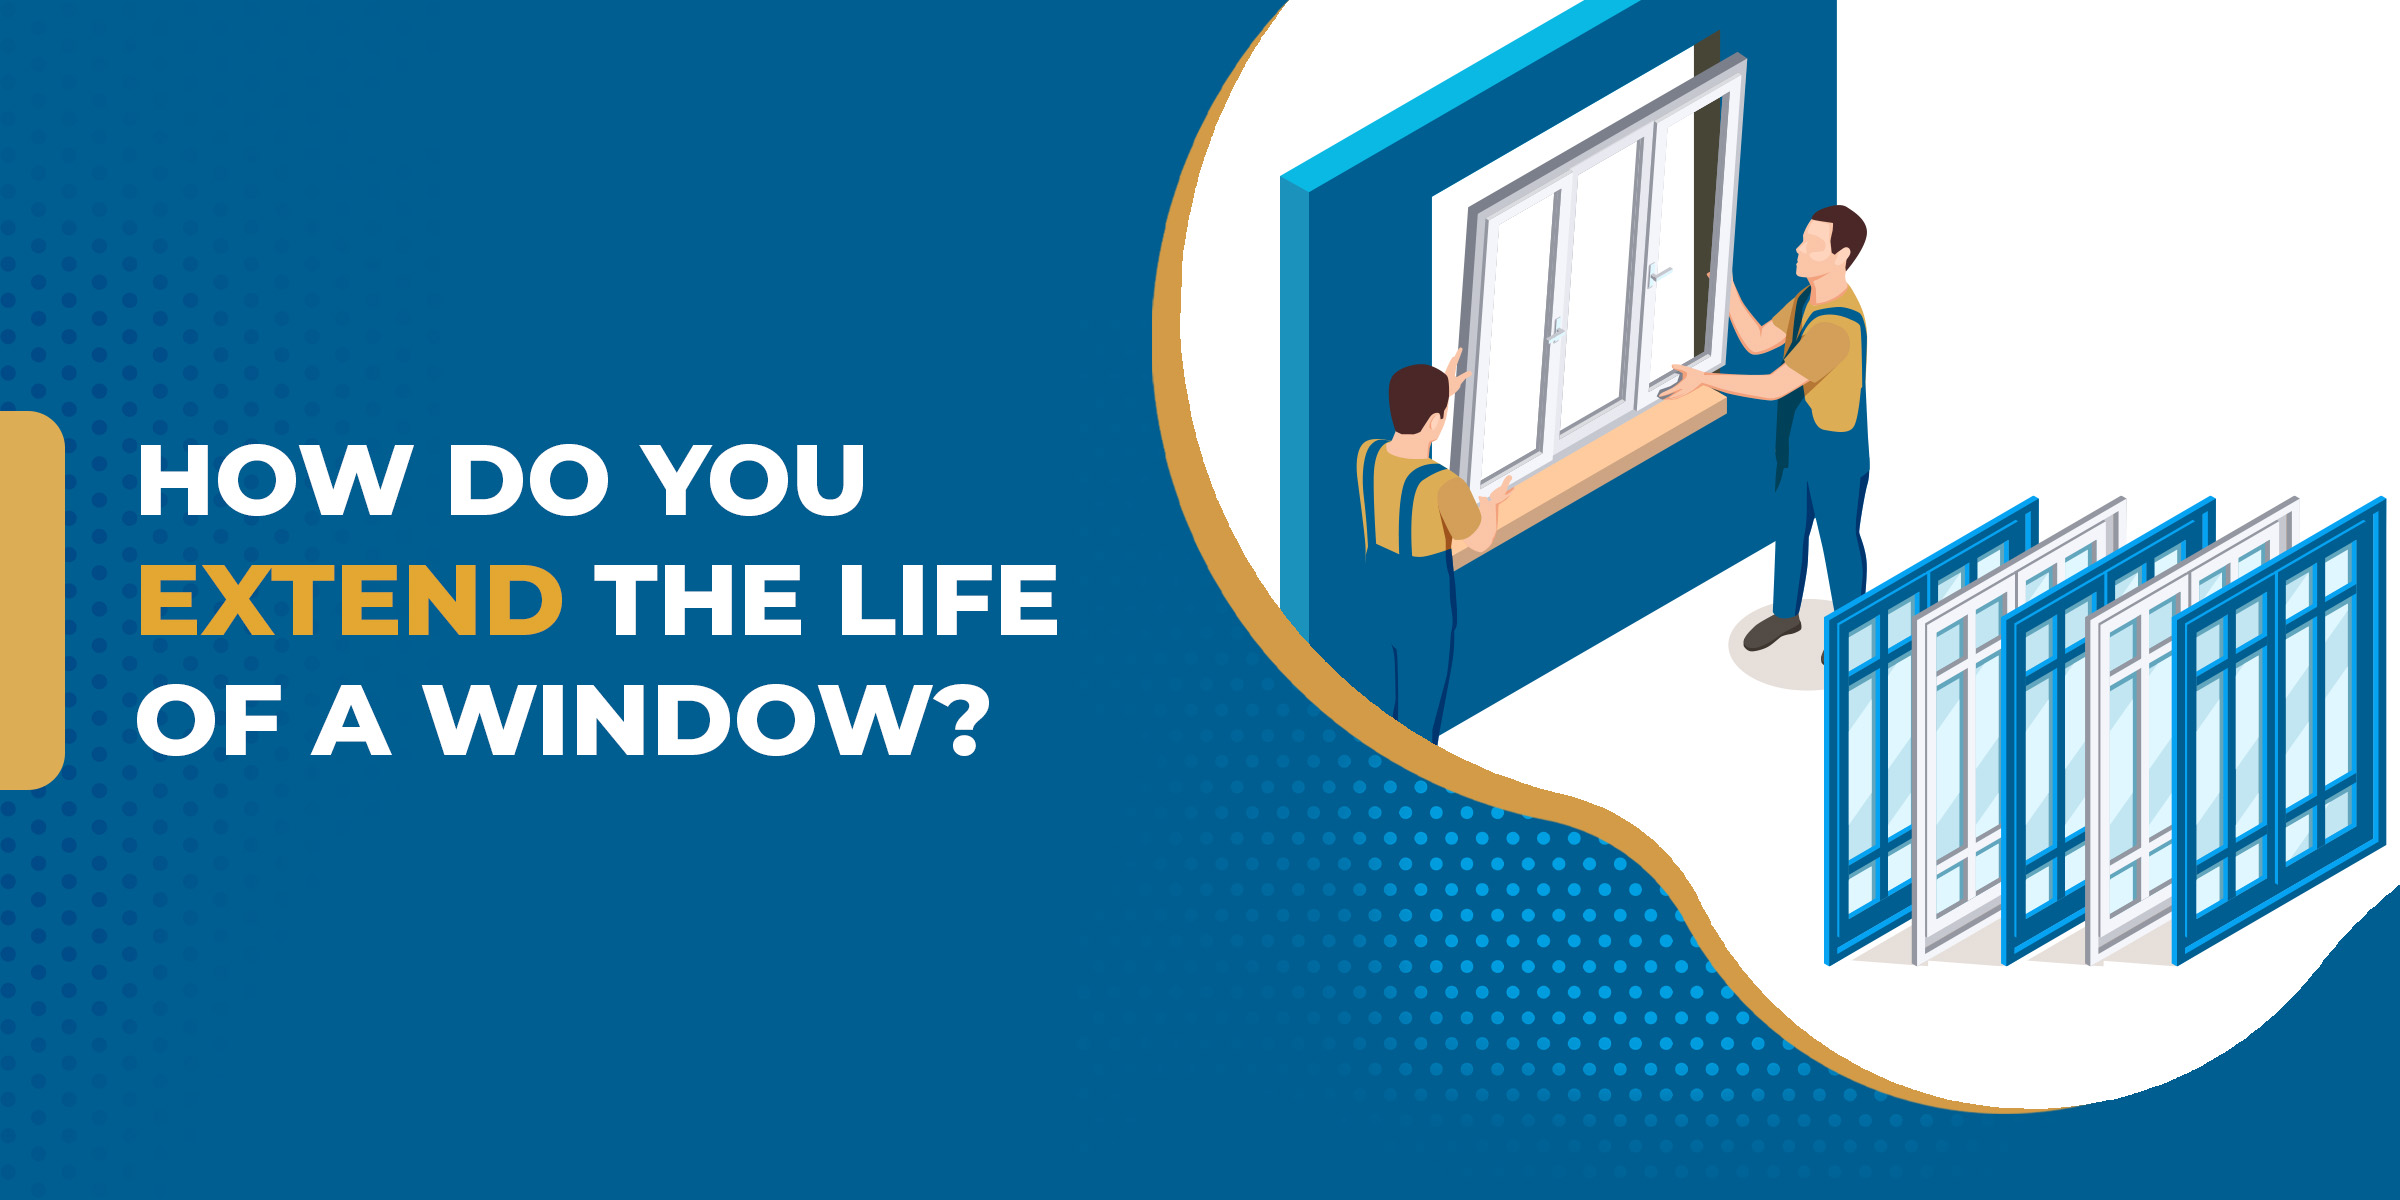 How do you extend the life of a window